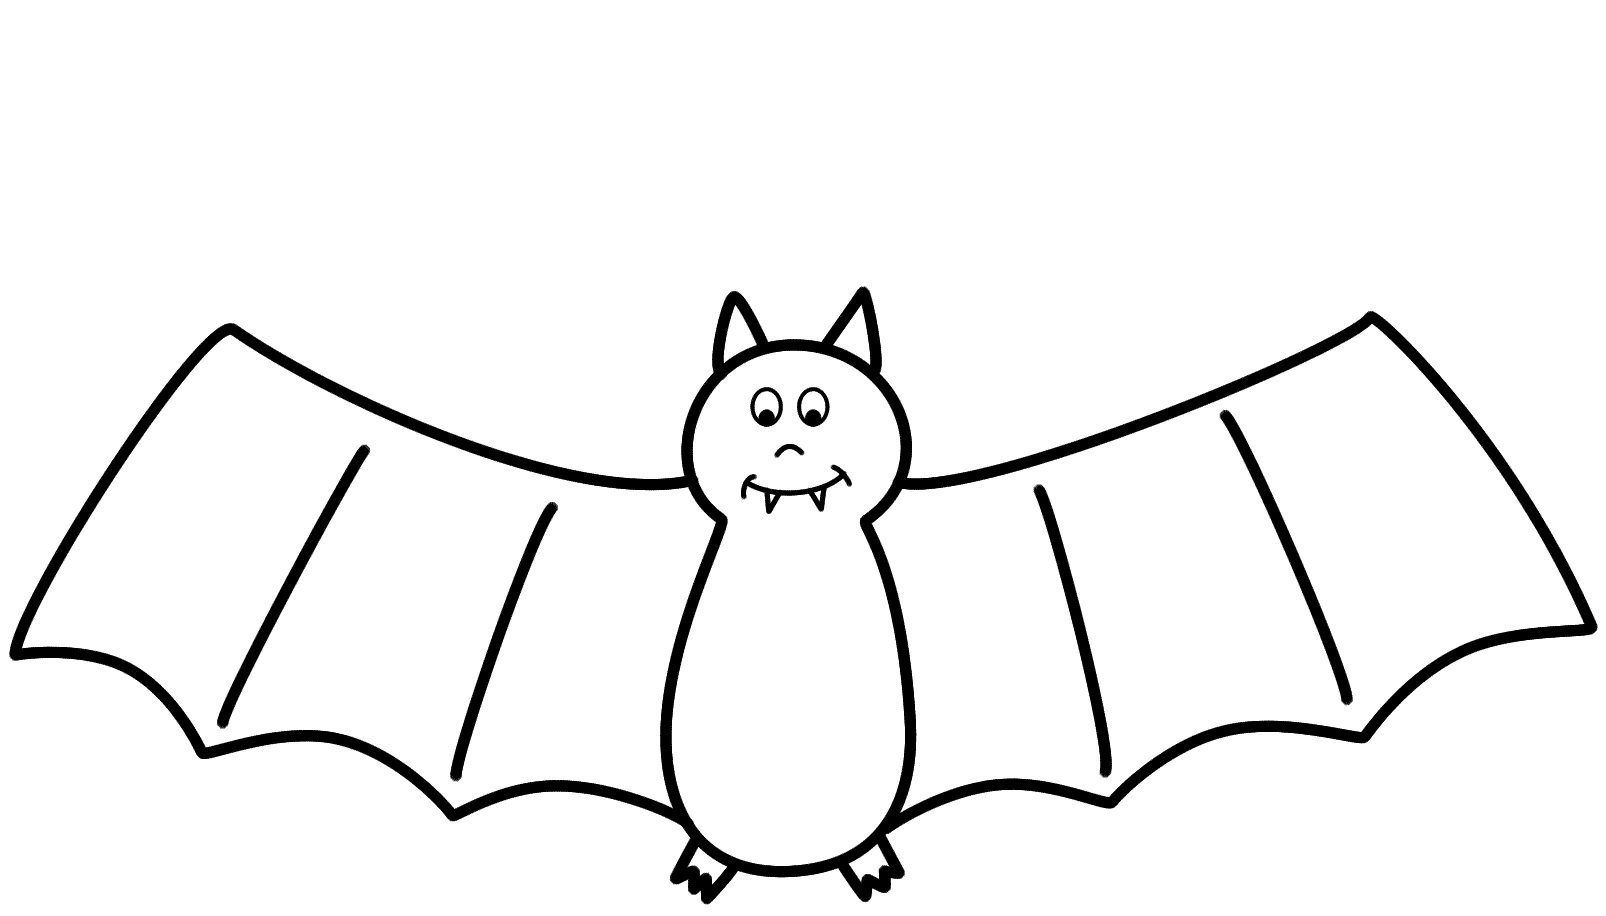 1606x916 Bats To Print And Color Halloween Bat Template To Print